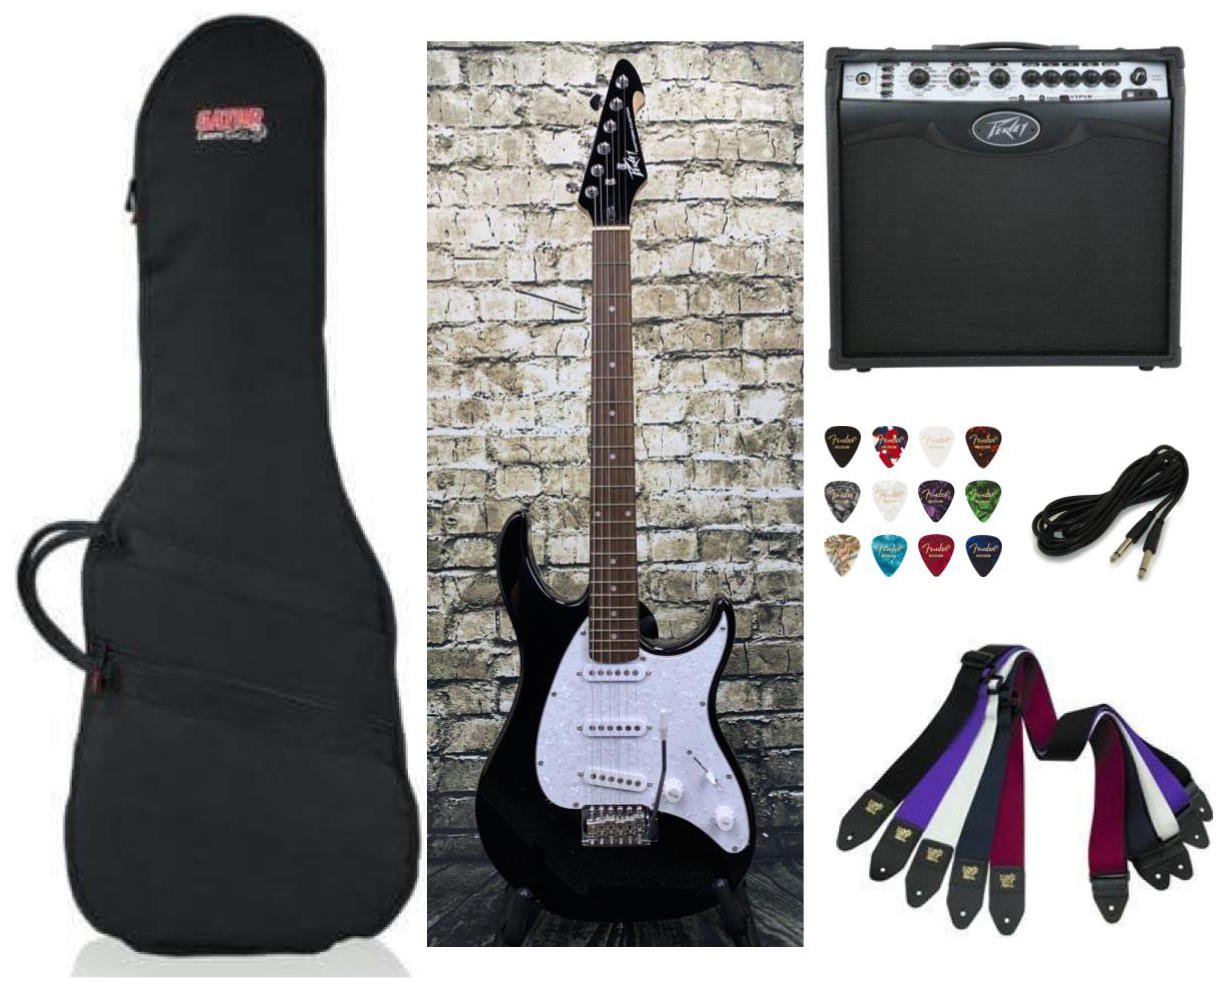 Peavey Raptor Custom Electric Guitar SSS - Black Package Deal with Amplifier, Gig Bag, Cable, Straps and Picks